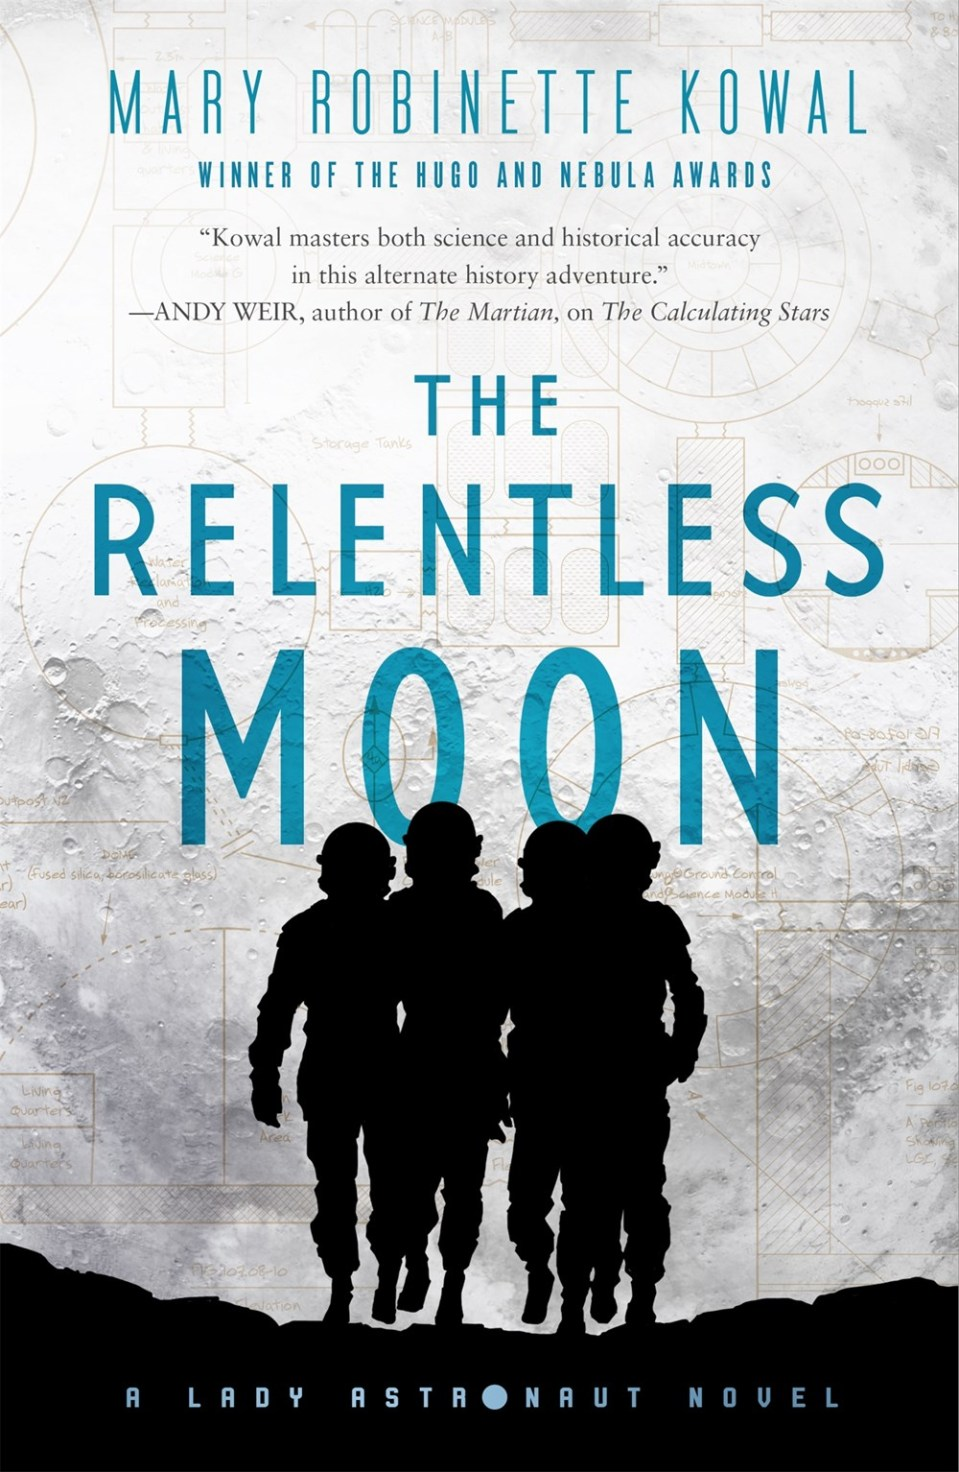 The Relentless Moon